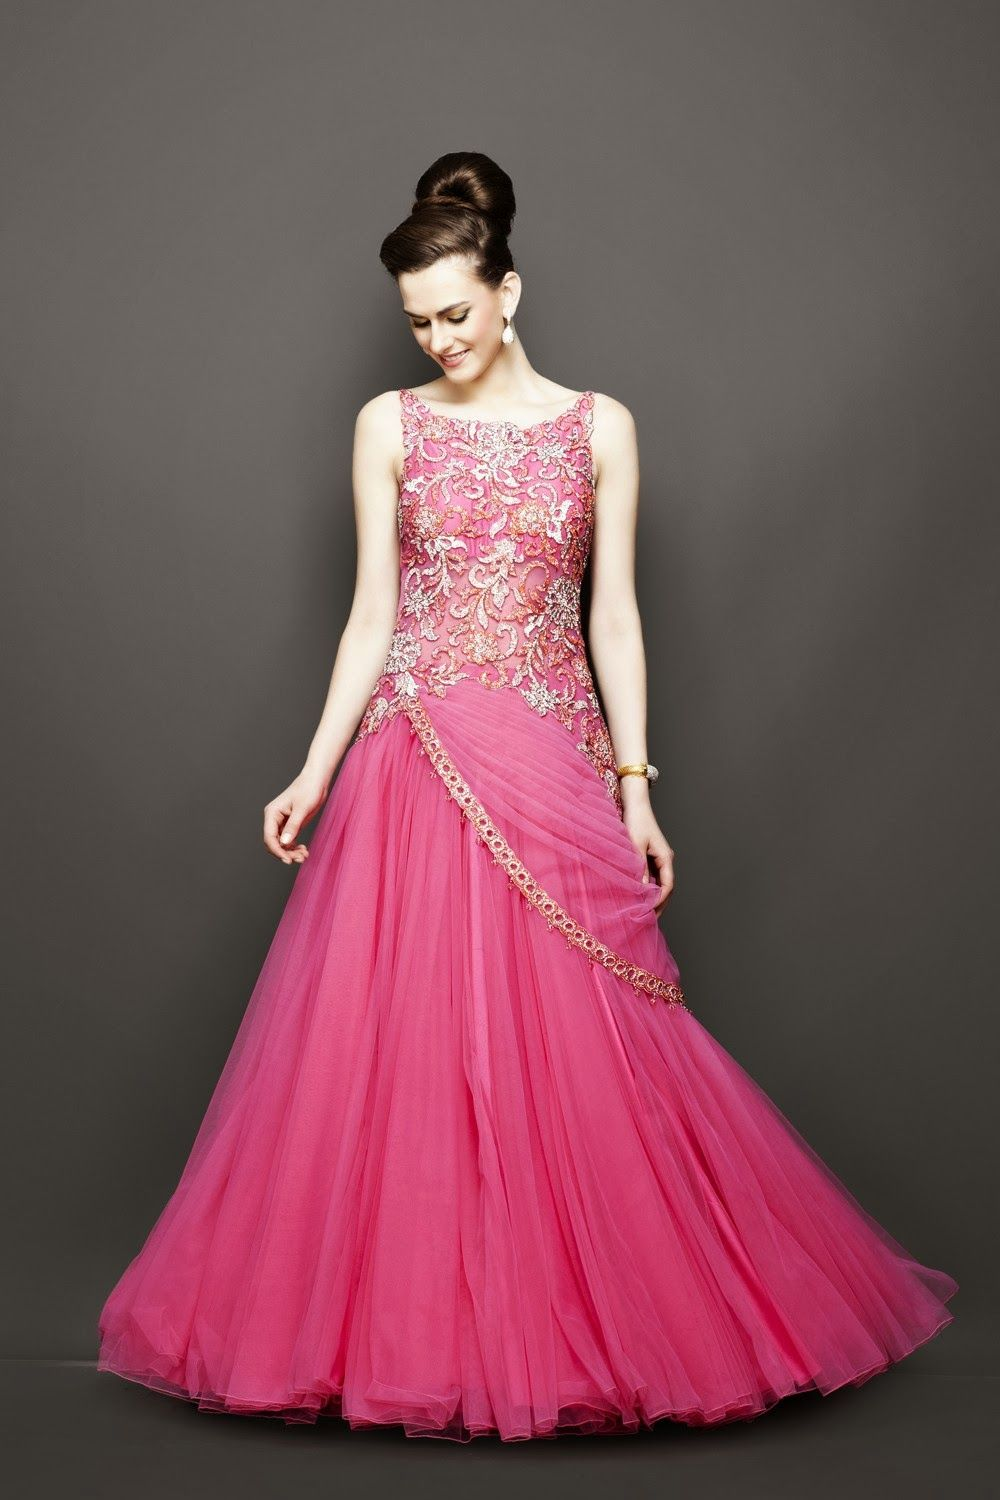 evening dress for wedding in pink color dresses With dresses for evening wedding